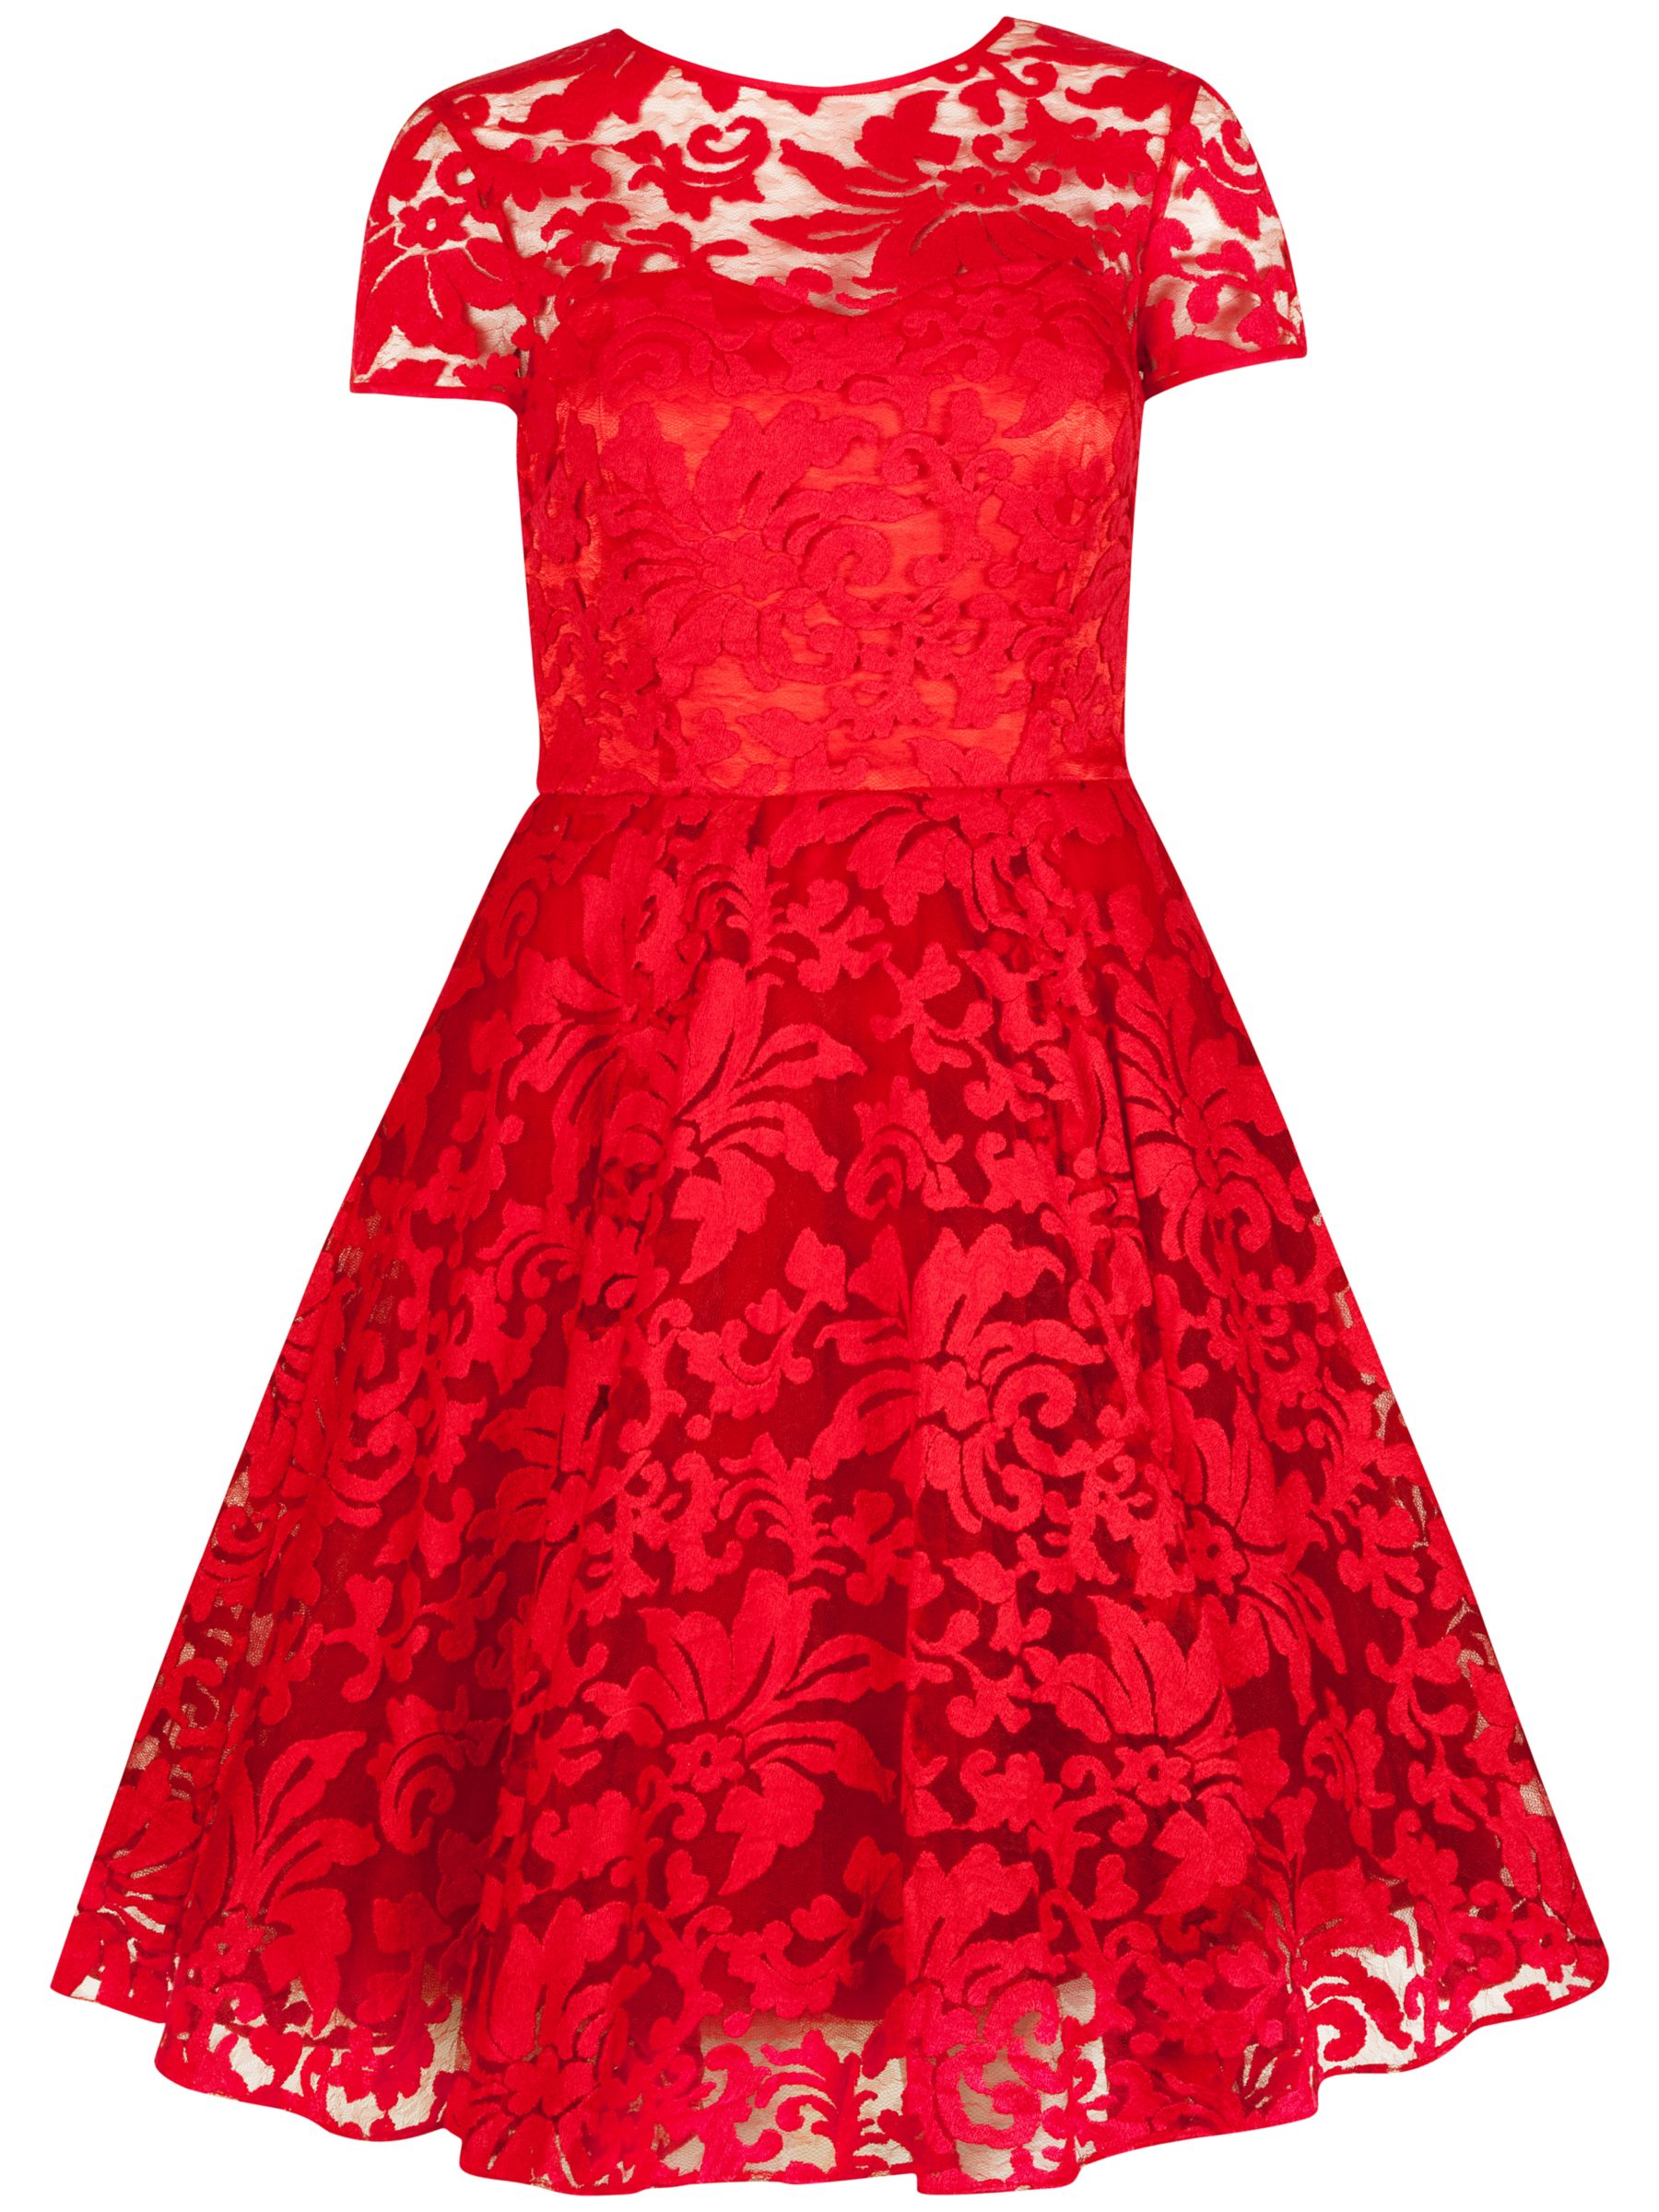 ted baker sheer floral overlay dress red, ted, baker, sheer, floral, overlay, dress, red, ted baker, 4|2|3|0|1, women, valentines fashion edit, womens dresses, gifts, wedding, wedding clothing, female guests, adult bridesmaids, valentines day, red dress, fashion magazine, womenswear, men, brands l-z, 1607494